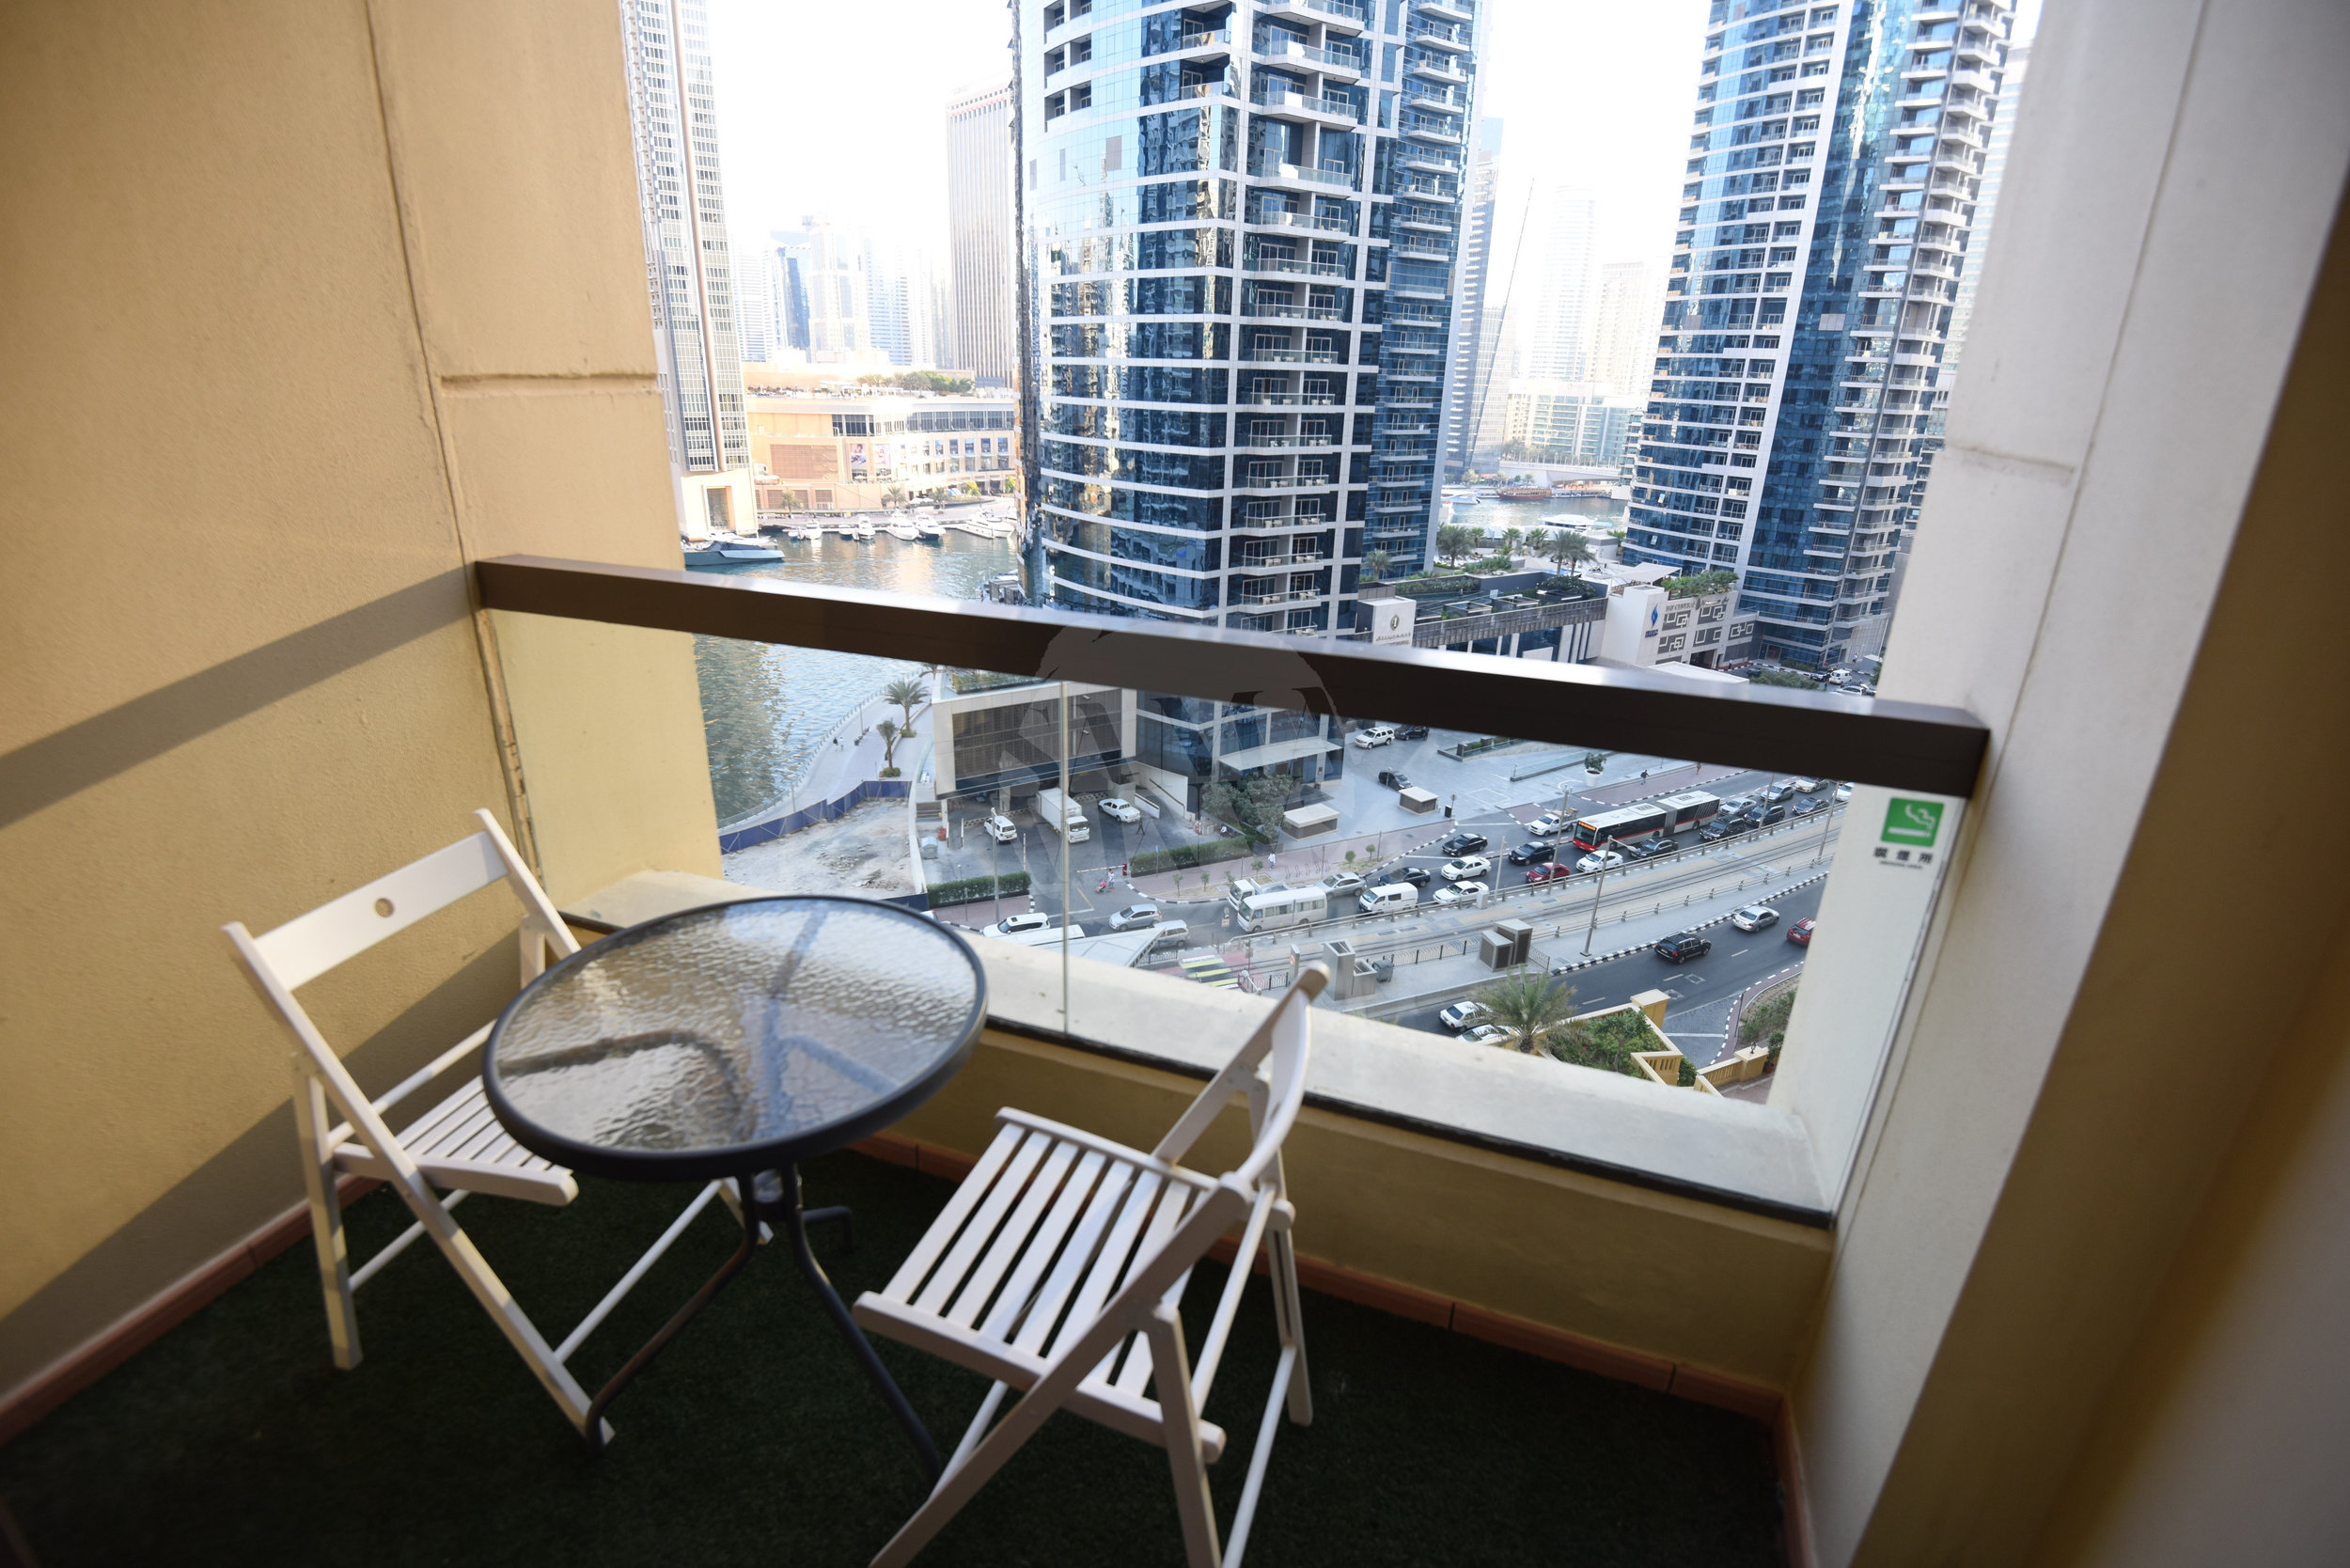 The balcony has enough room to seat four and has fantastic views of the world-famous Dubai Marina